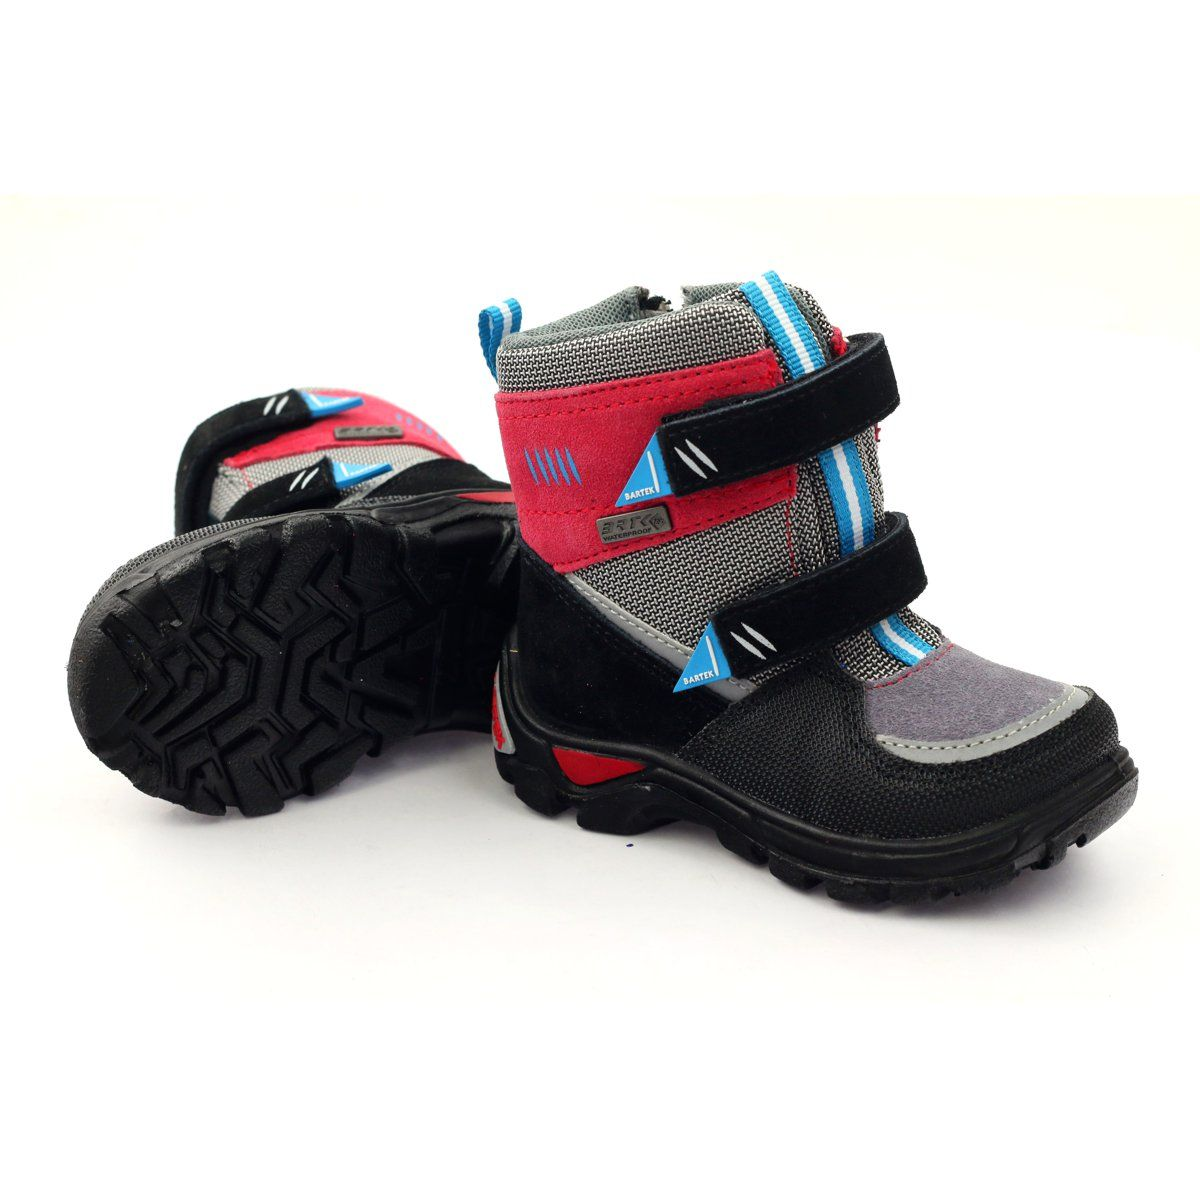 Snow Boots With Membrane Bartek 21759 Red Grey Blue Black Boots Childrens Boots Snow Boots